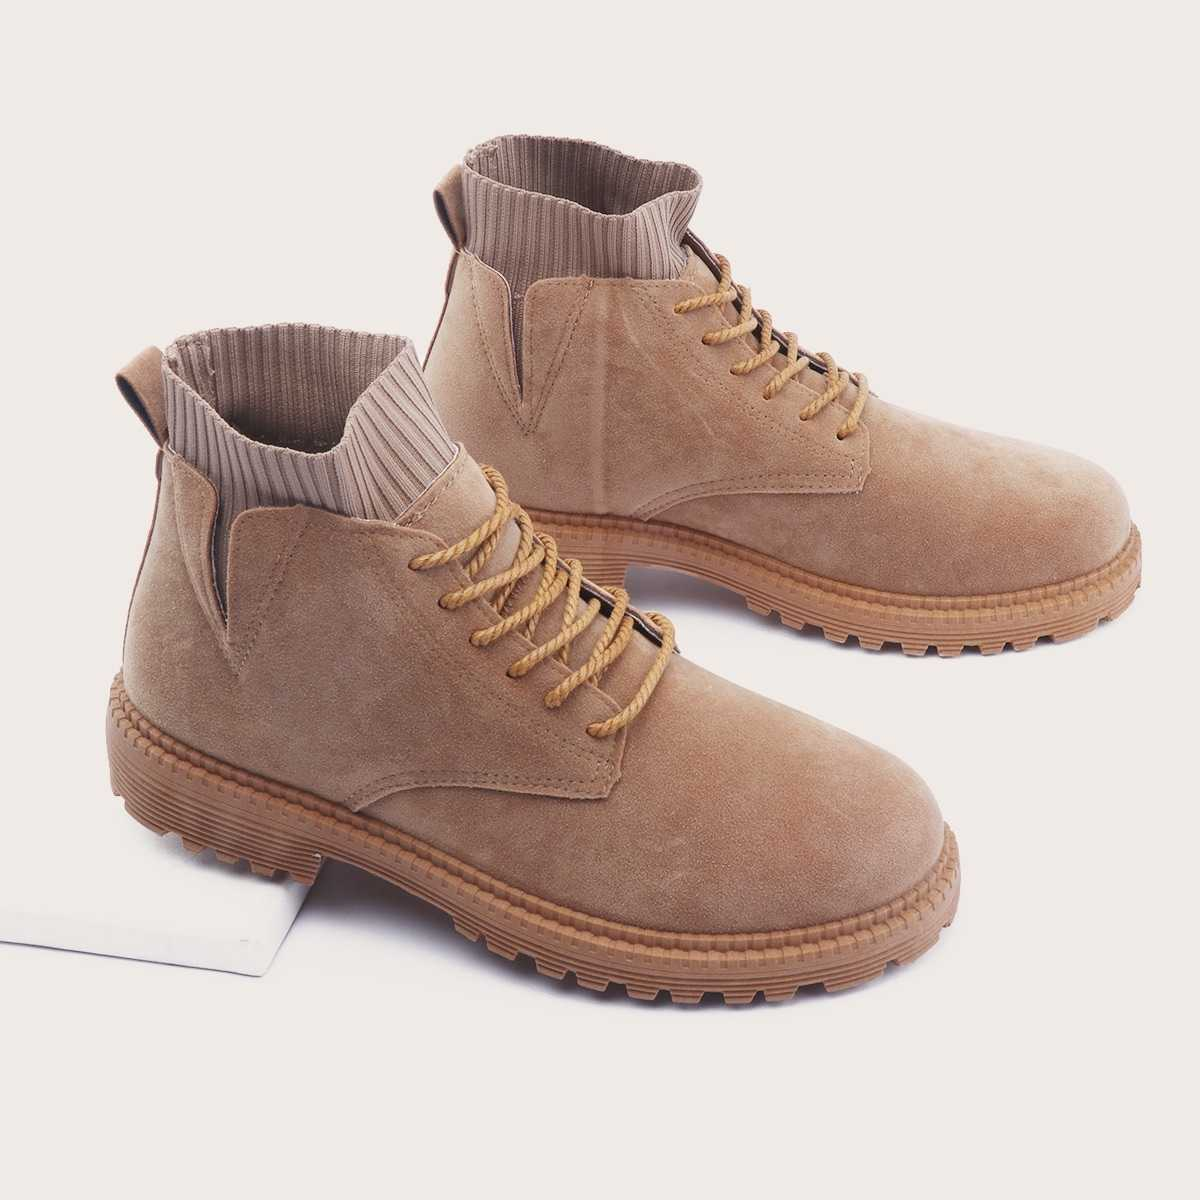 Guys Lace-up Front Suede Ankle Boots in Khaki by ROMWE on GOOFASH